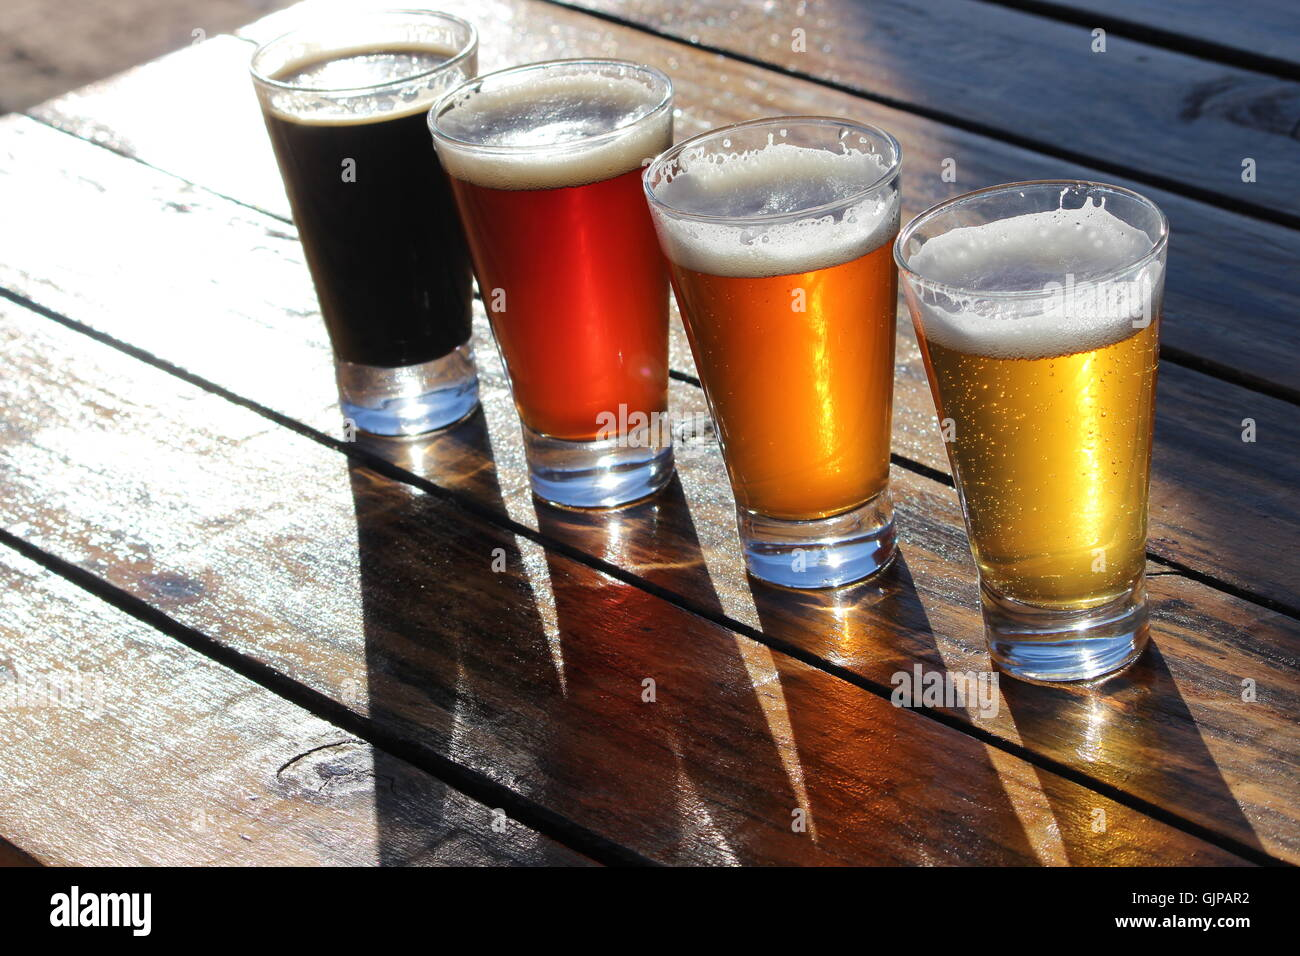 A selection of four craft beers during a tasting session on a wooden table with the sunlight shining through the - Stock Image